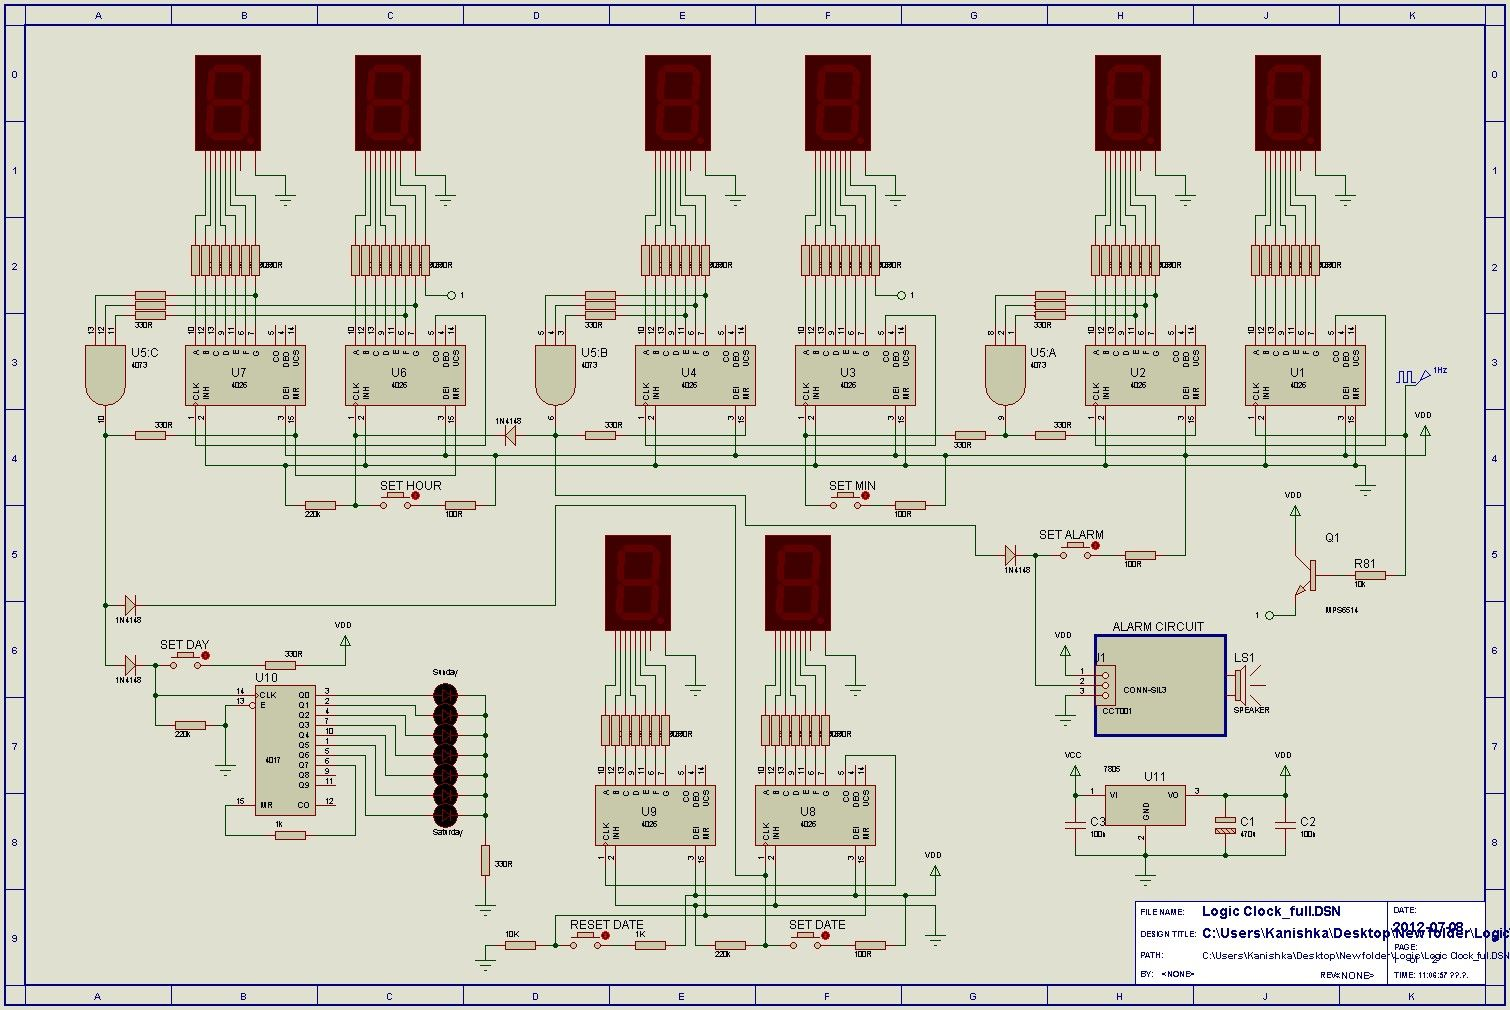 24hr Digital Clock And Alarm Circuit Using Logic Ics Cd4017 Diagram Puertas Logicas Homemade Pic Programmer Schematic